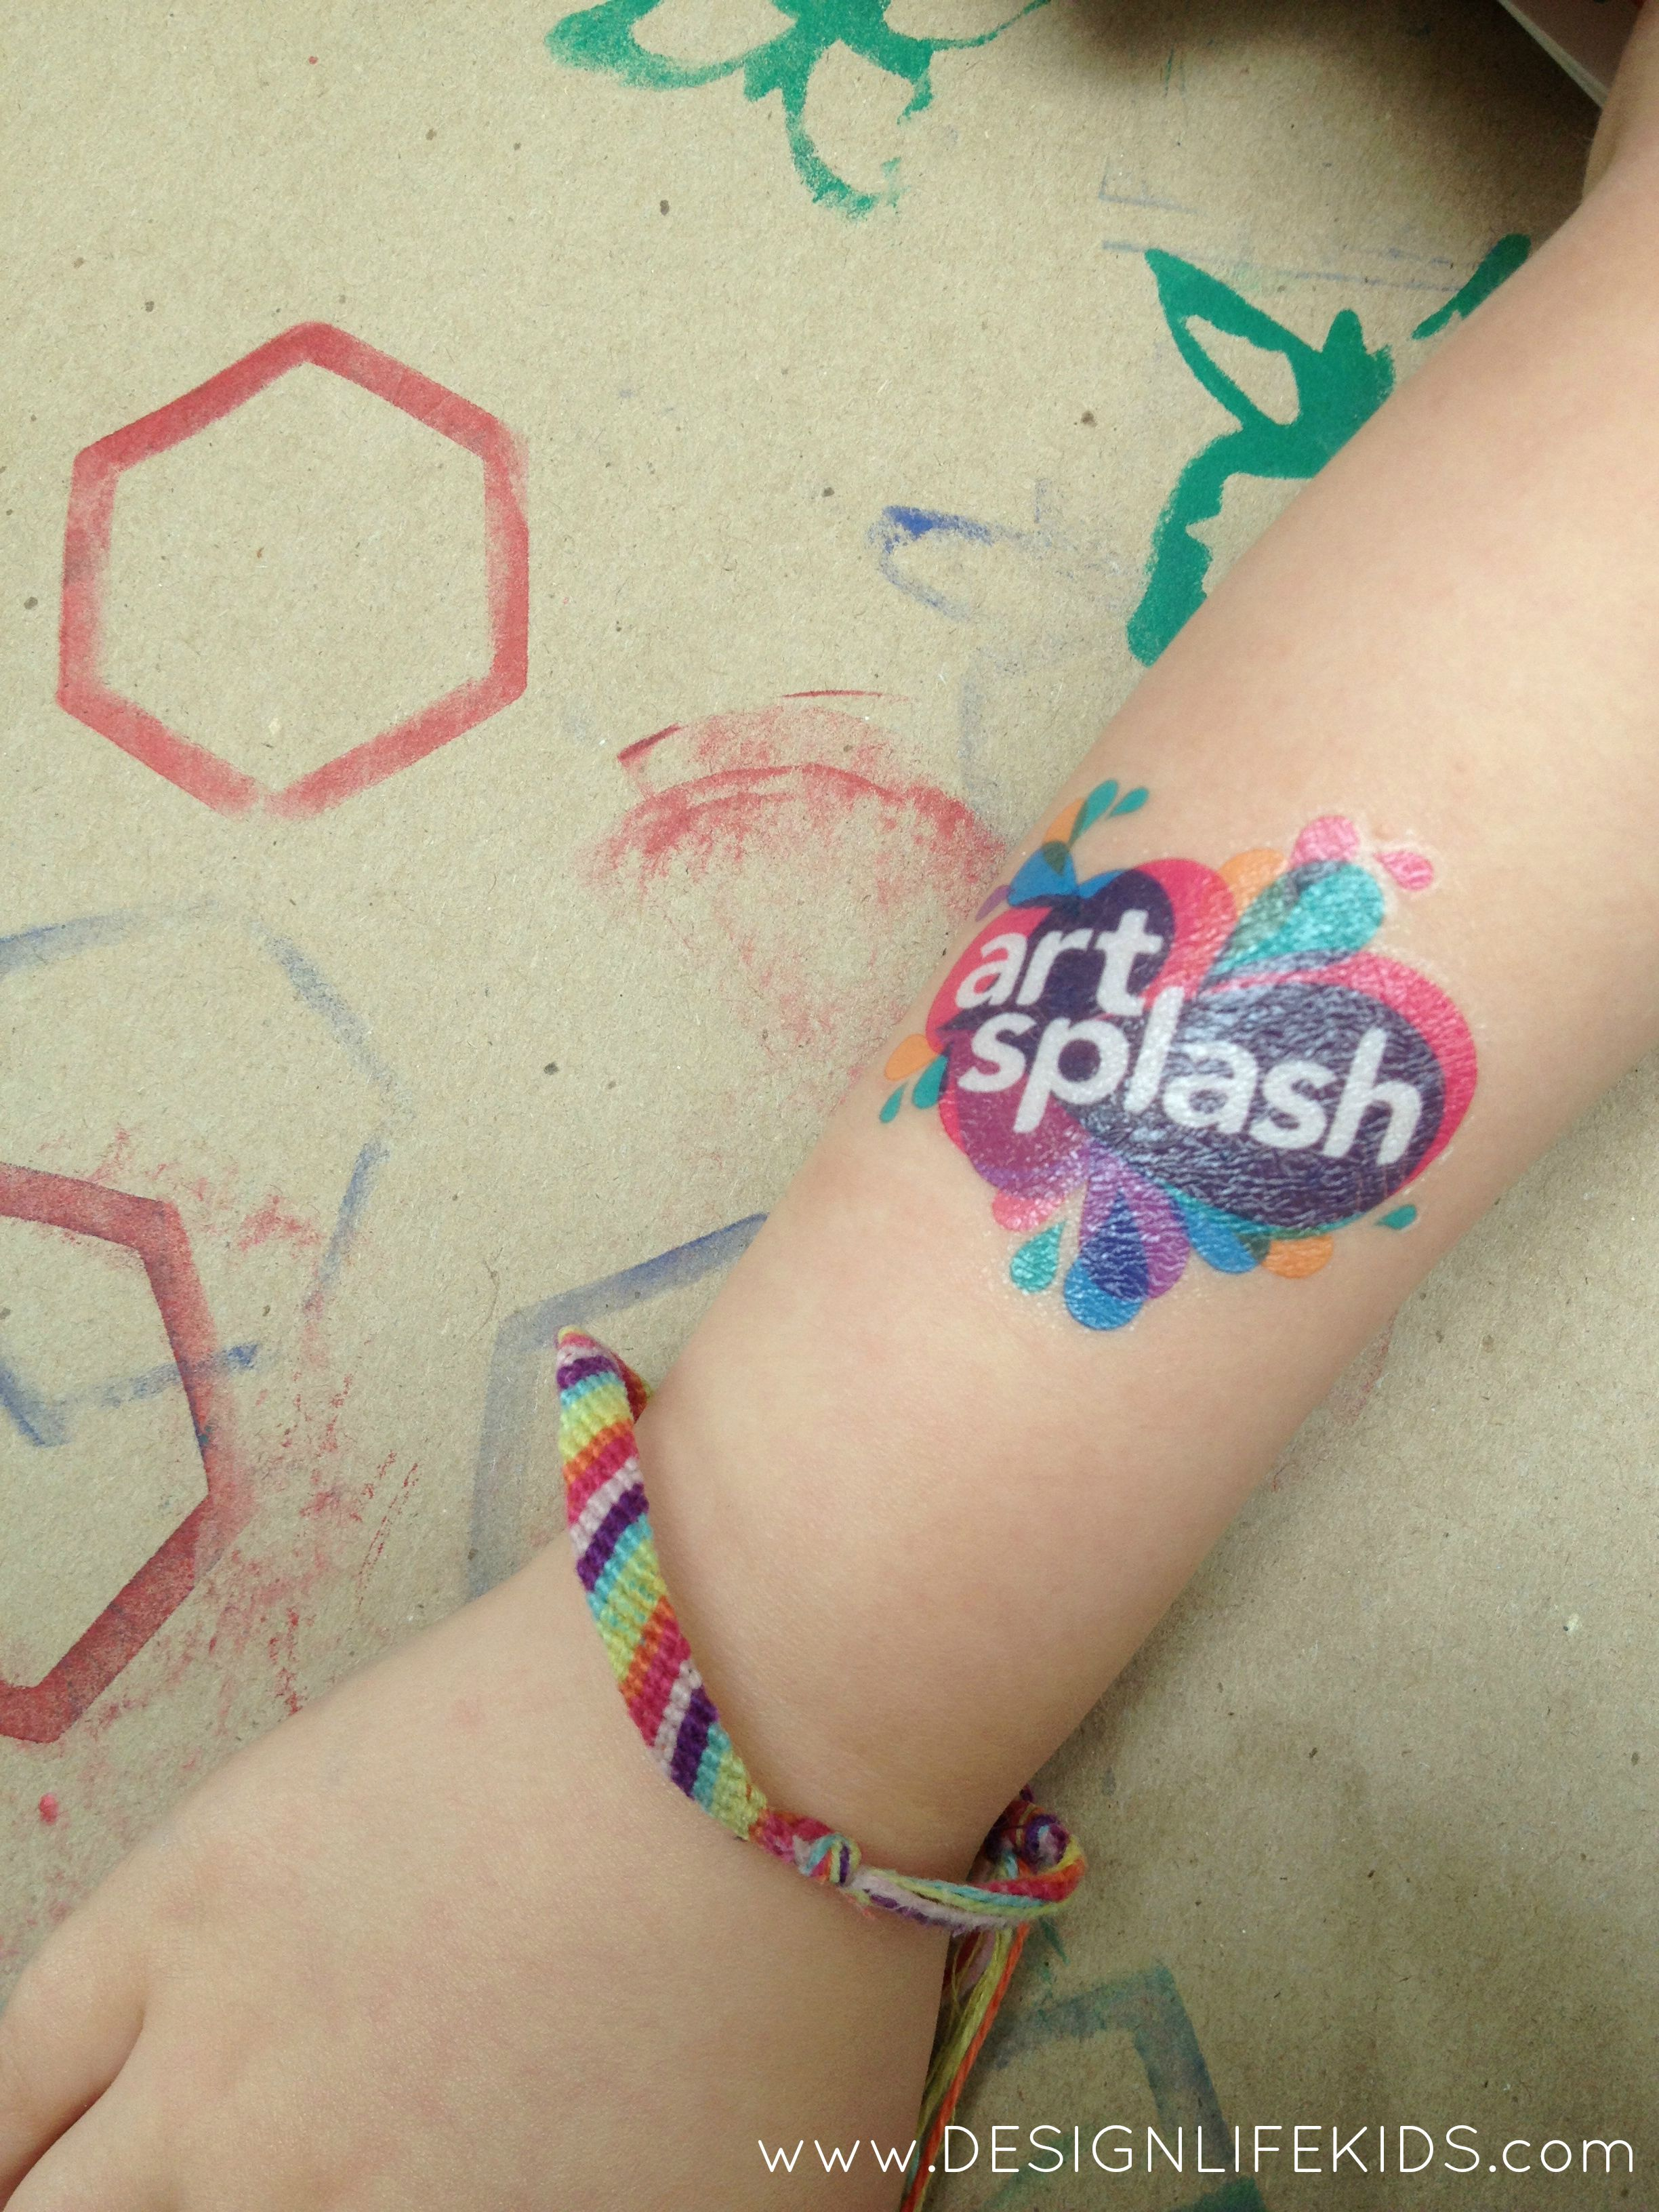 ART SPLASH at the Philadelphia Museum of Art. exhibits for families and kids at the stunning Perelman Building | on DESIGN + LIFE + KIDS